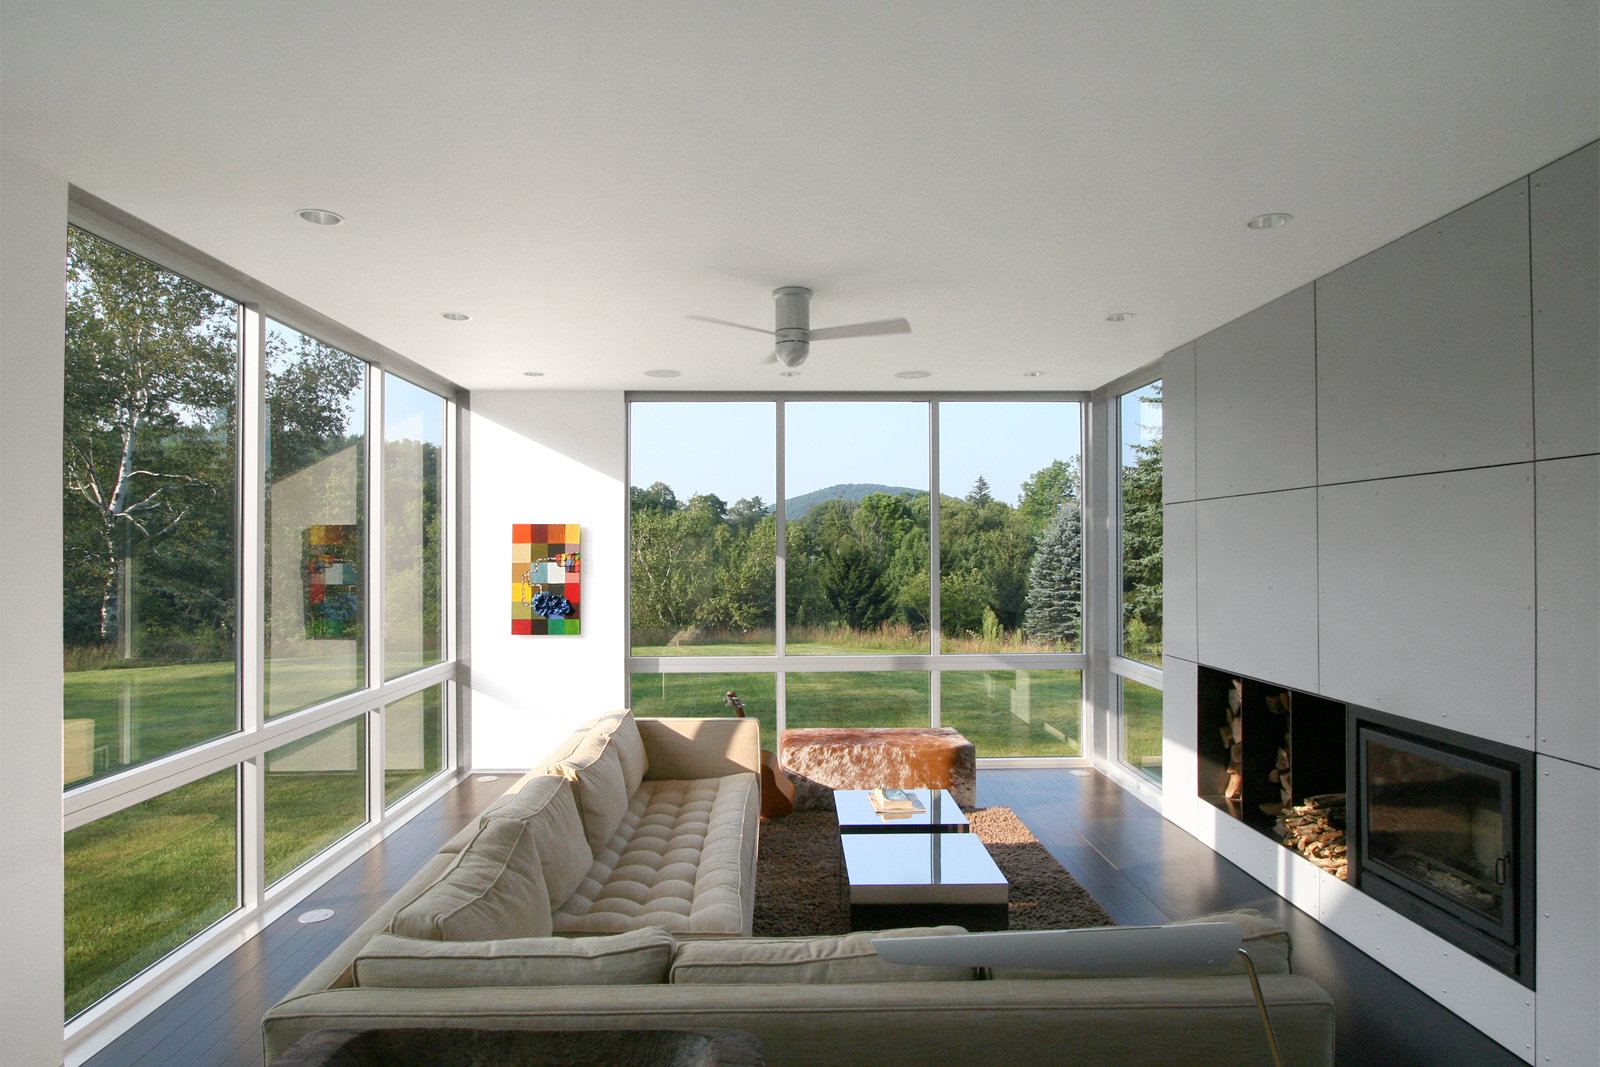 05-res4-resolution-4-architecture-modern-modular-home-prefab-sunset-ridge-house-interior-living-room.jpg